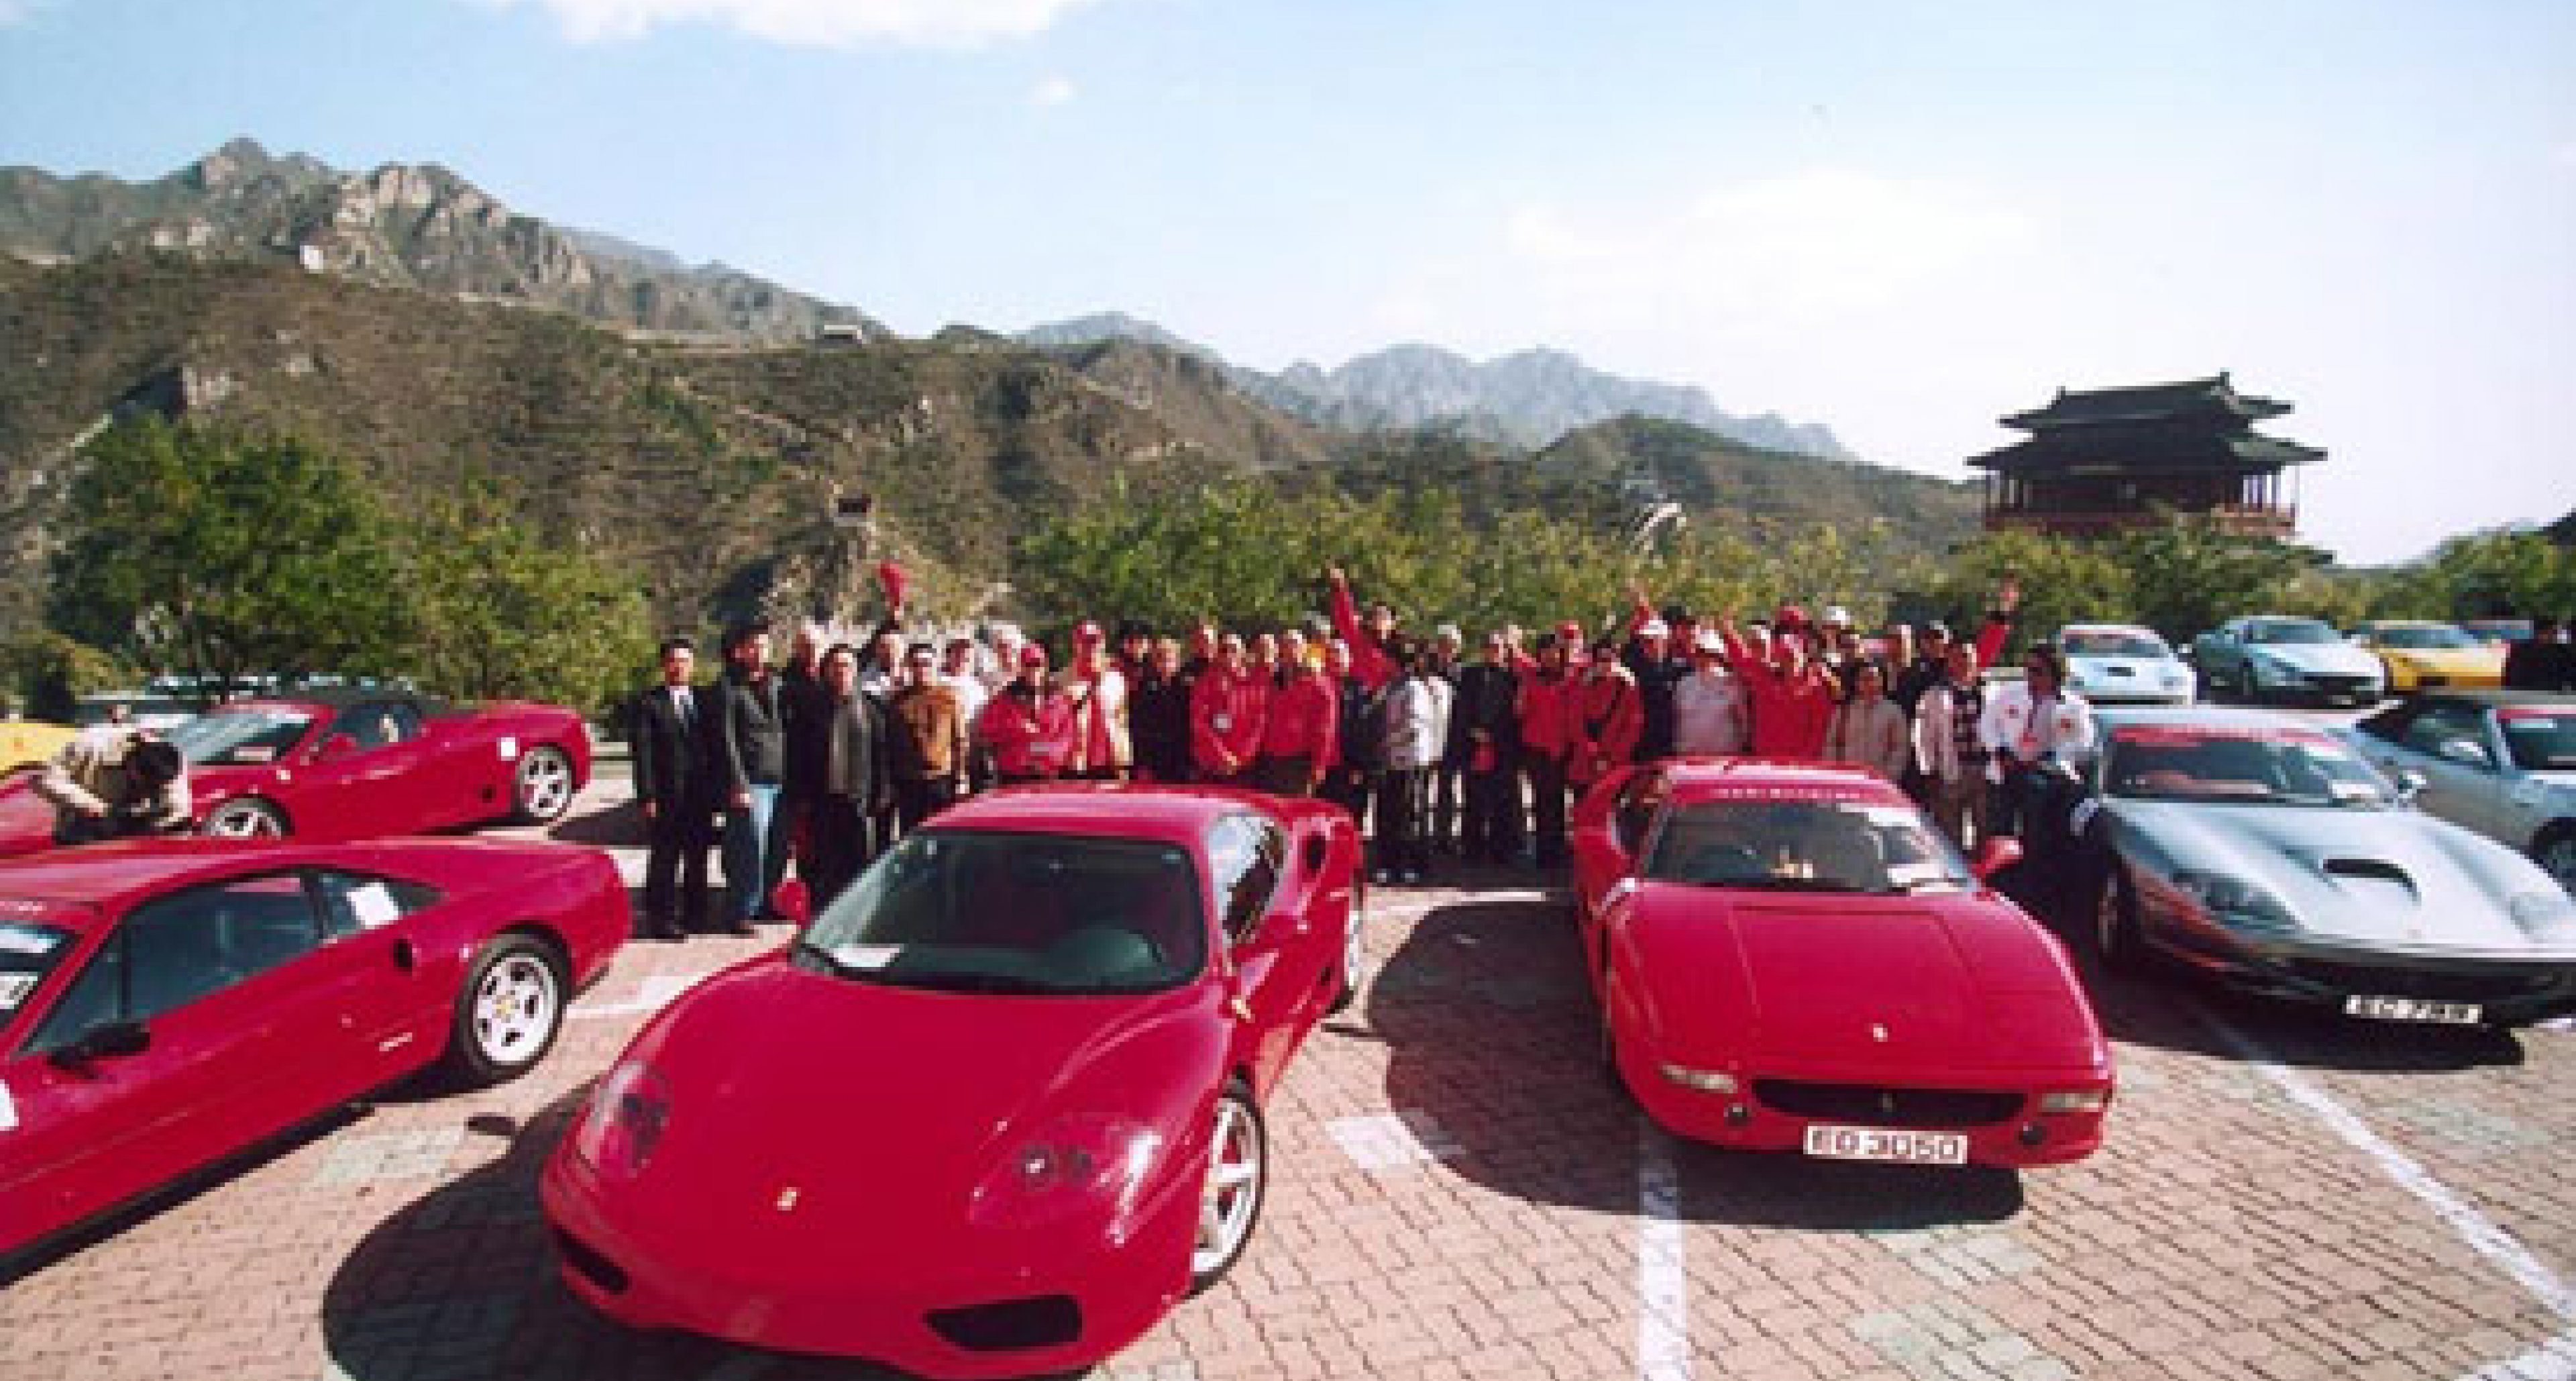 Grand parade in Tian-an-Men square to celebrate 10 years of Ferrari in China